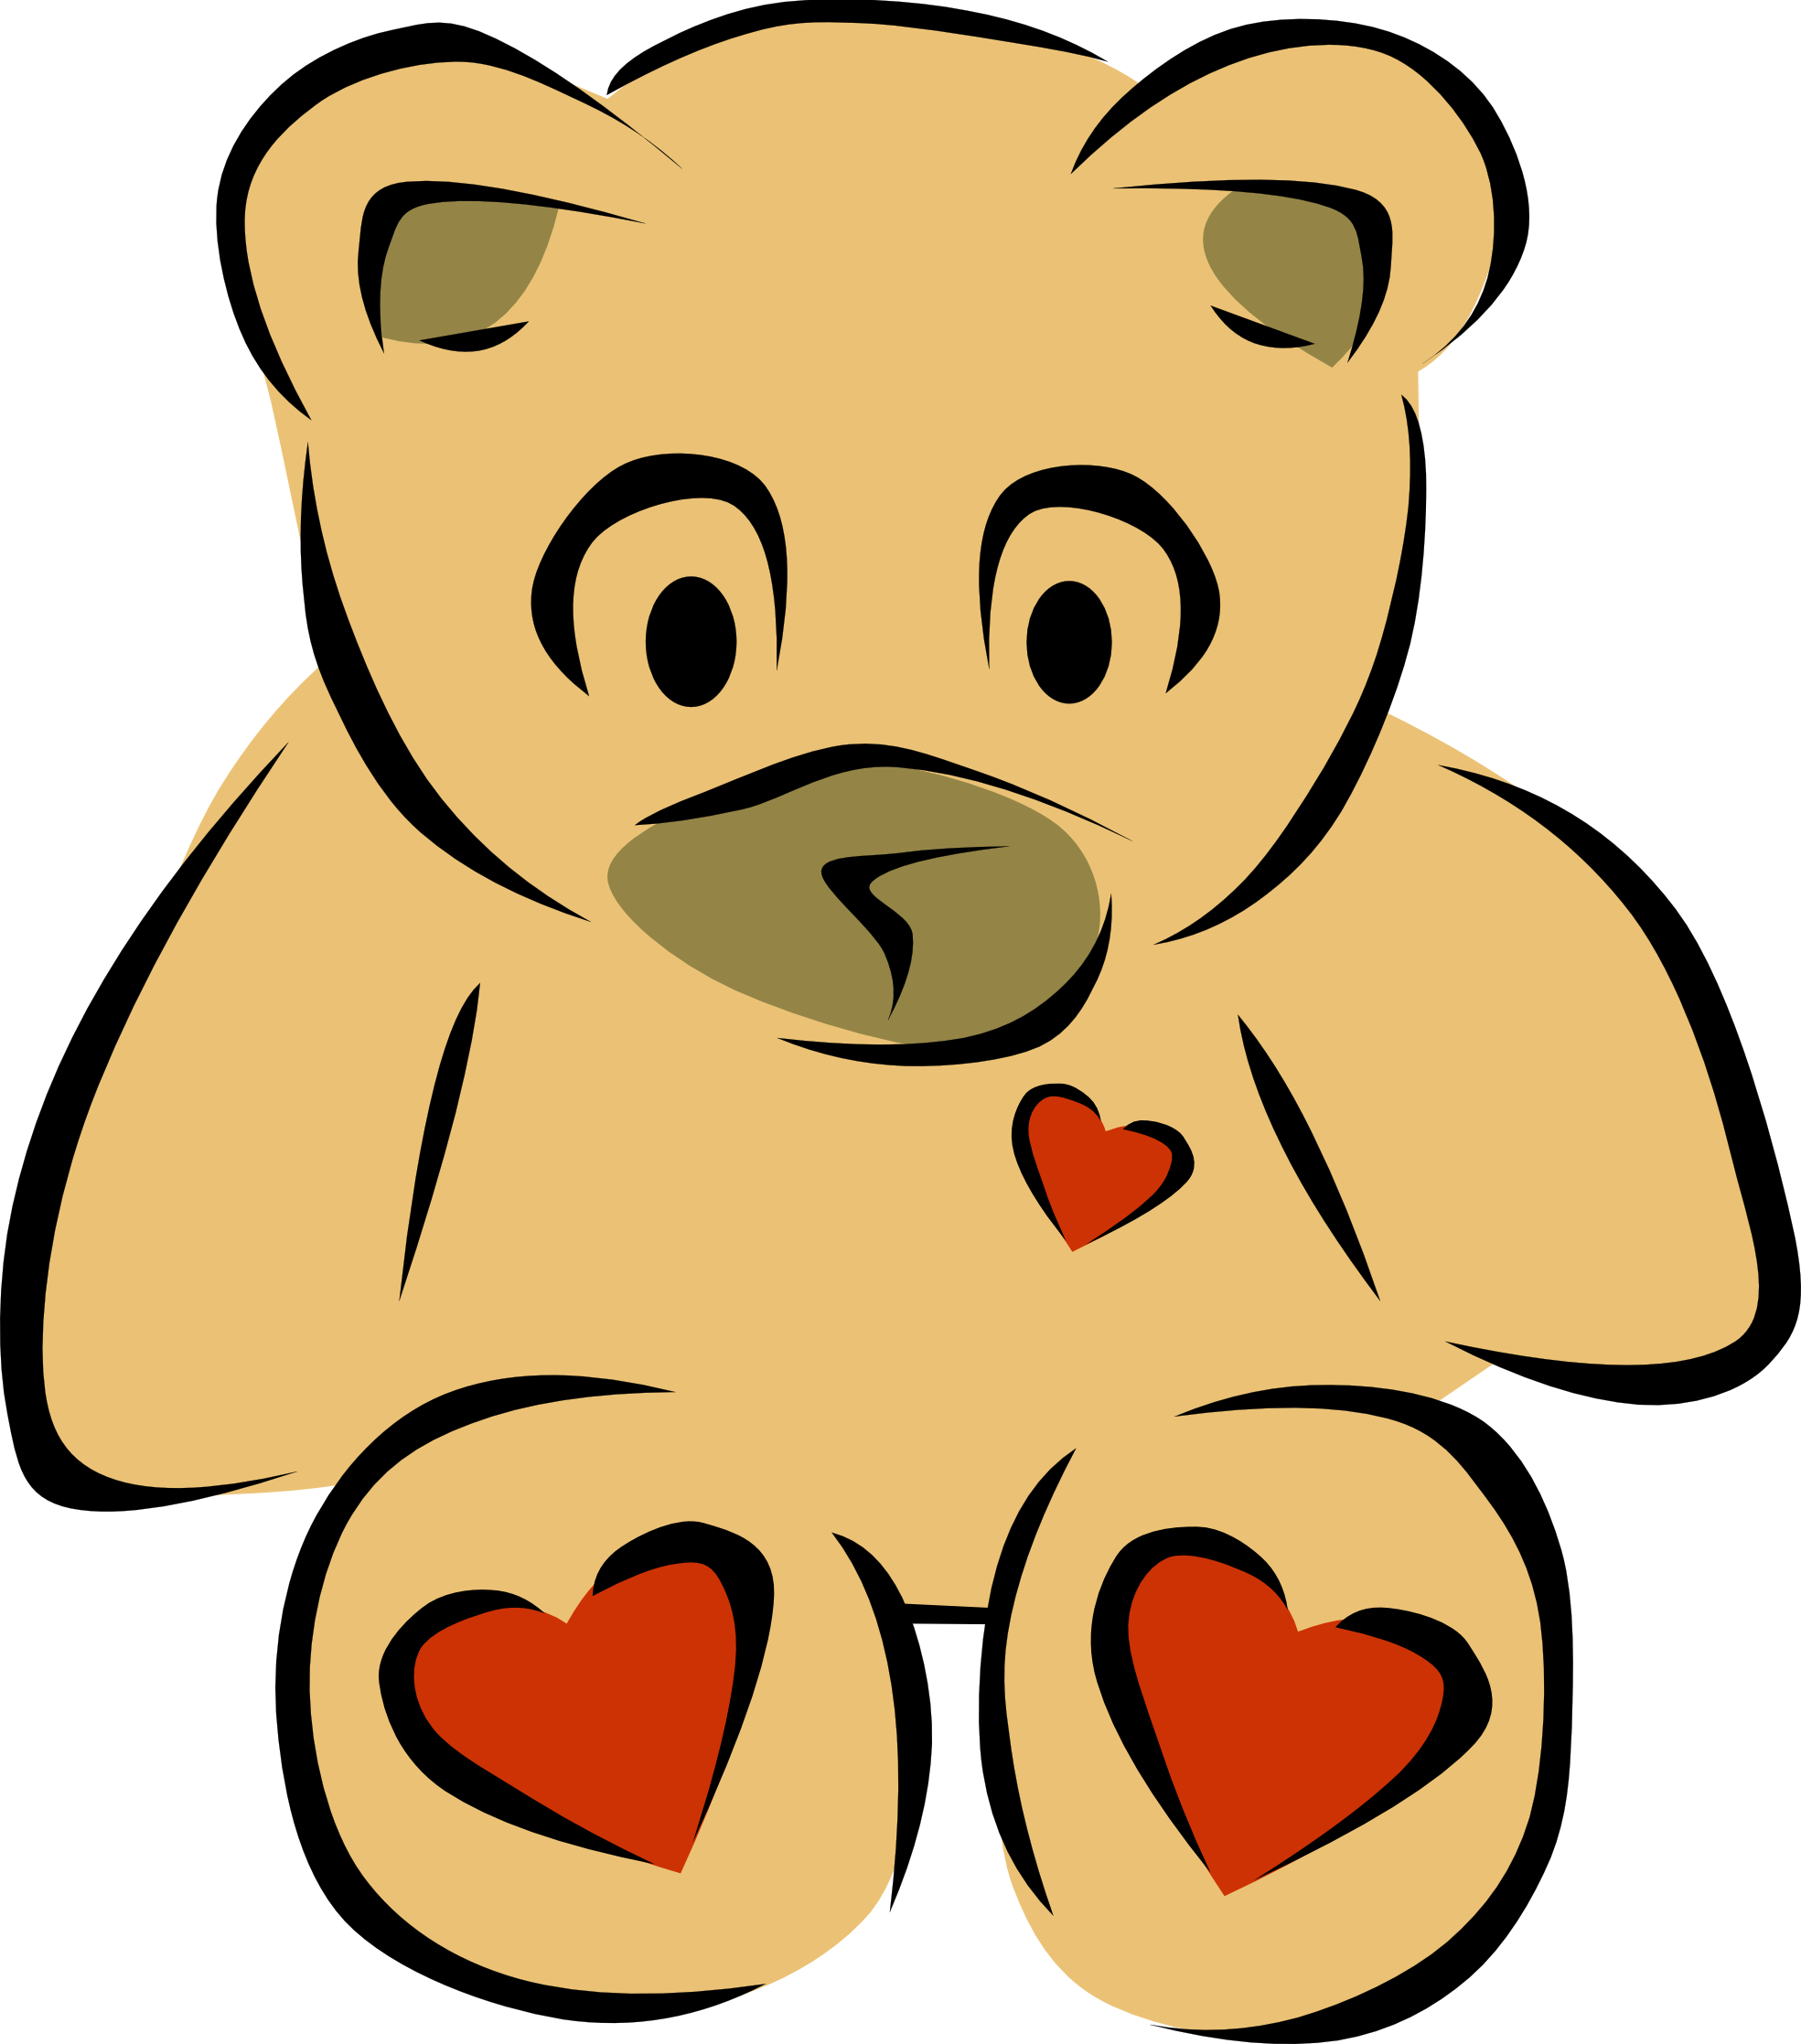 Stuffed Animal clipart #16, Download drawings